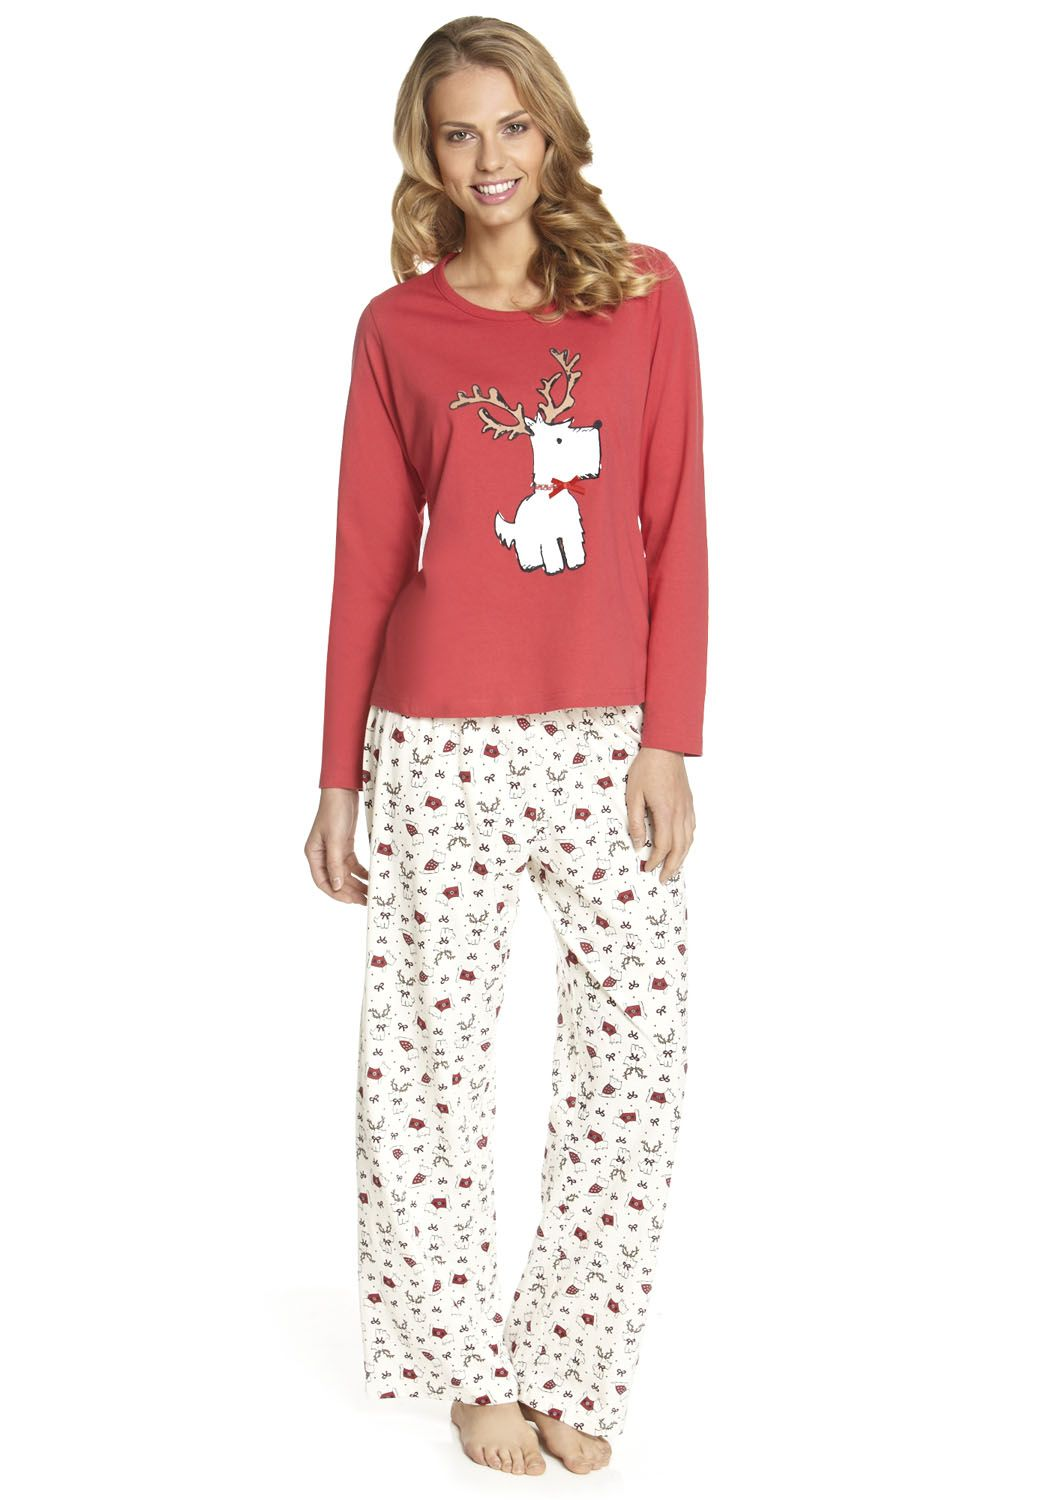 877c4ec310 F Christmas Scottie dog pyjamas | Scottish Terriers Rule My Heart in ...